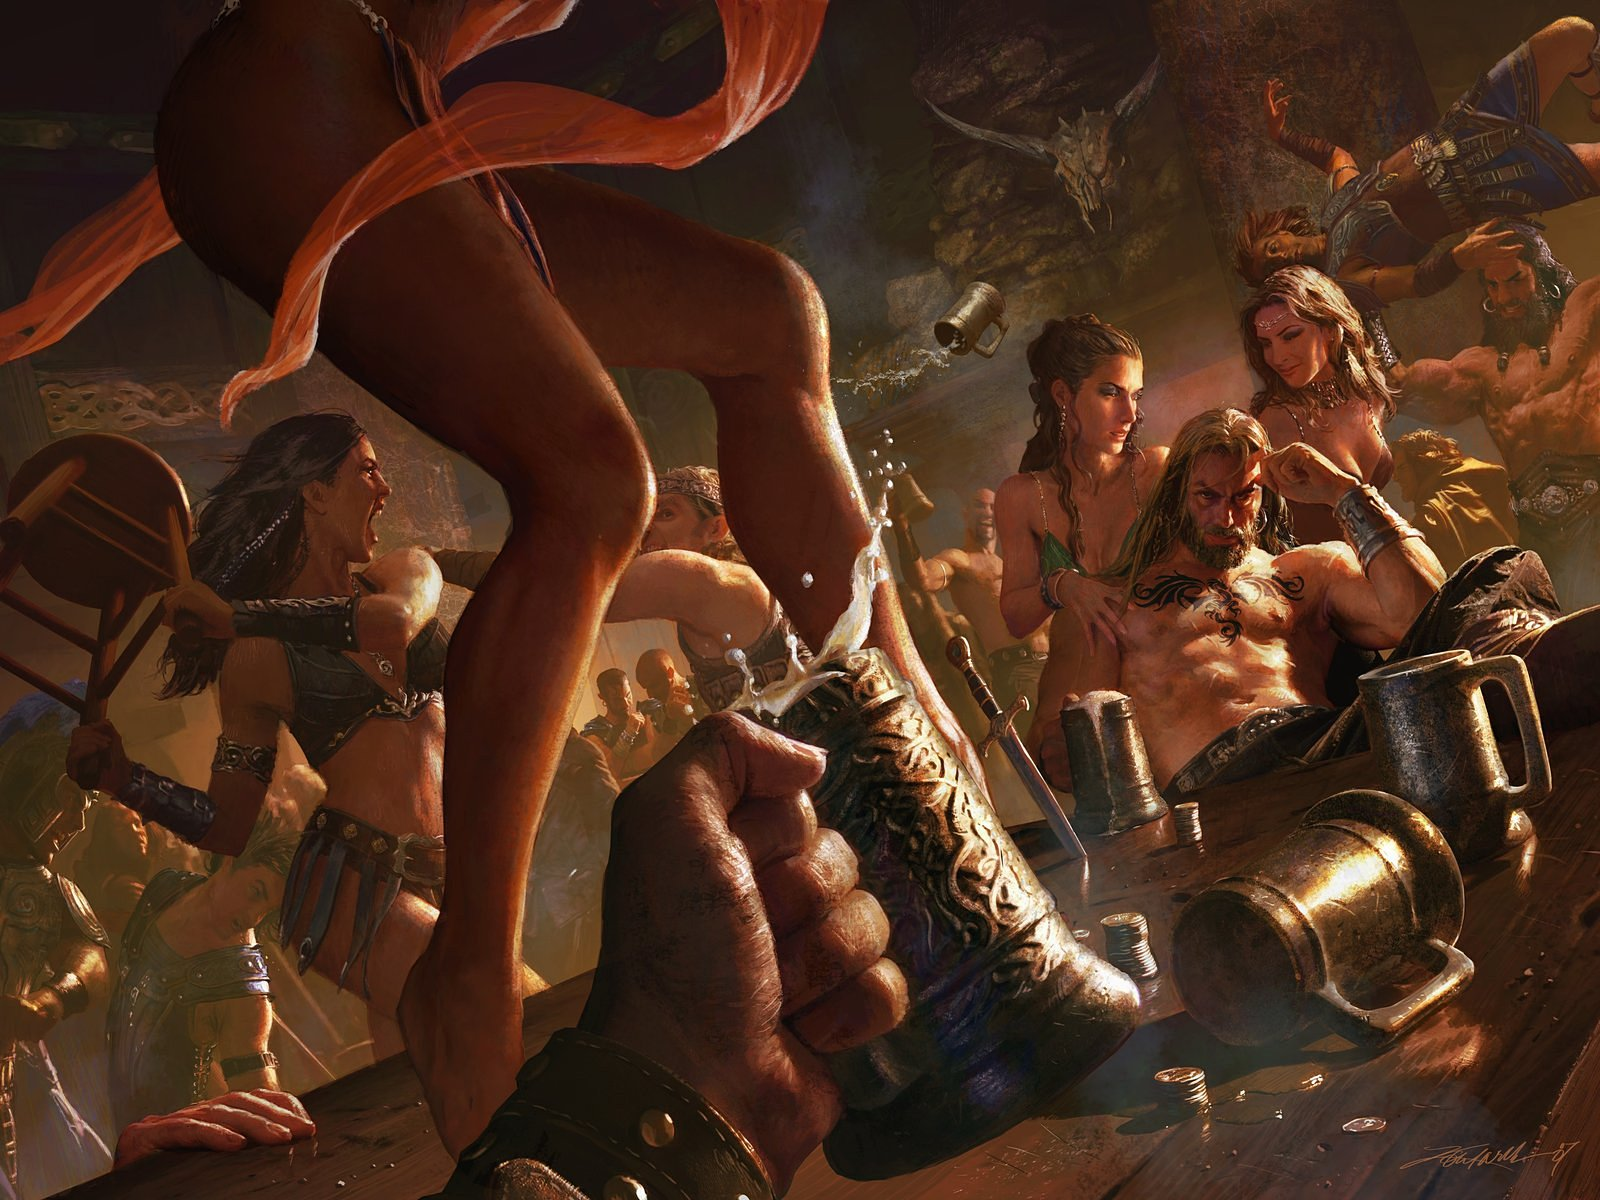 Age of conan unchained nude mod nackt toons